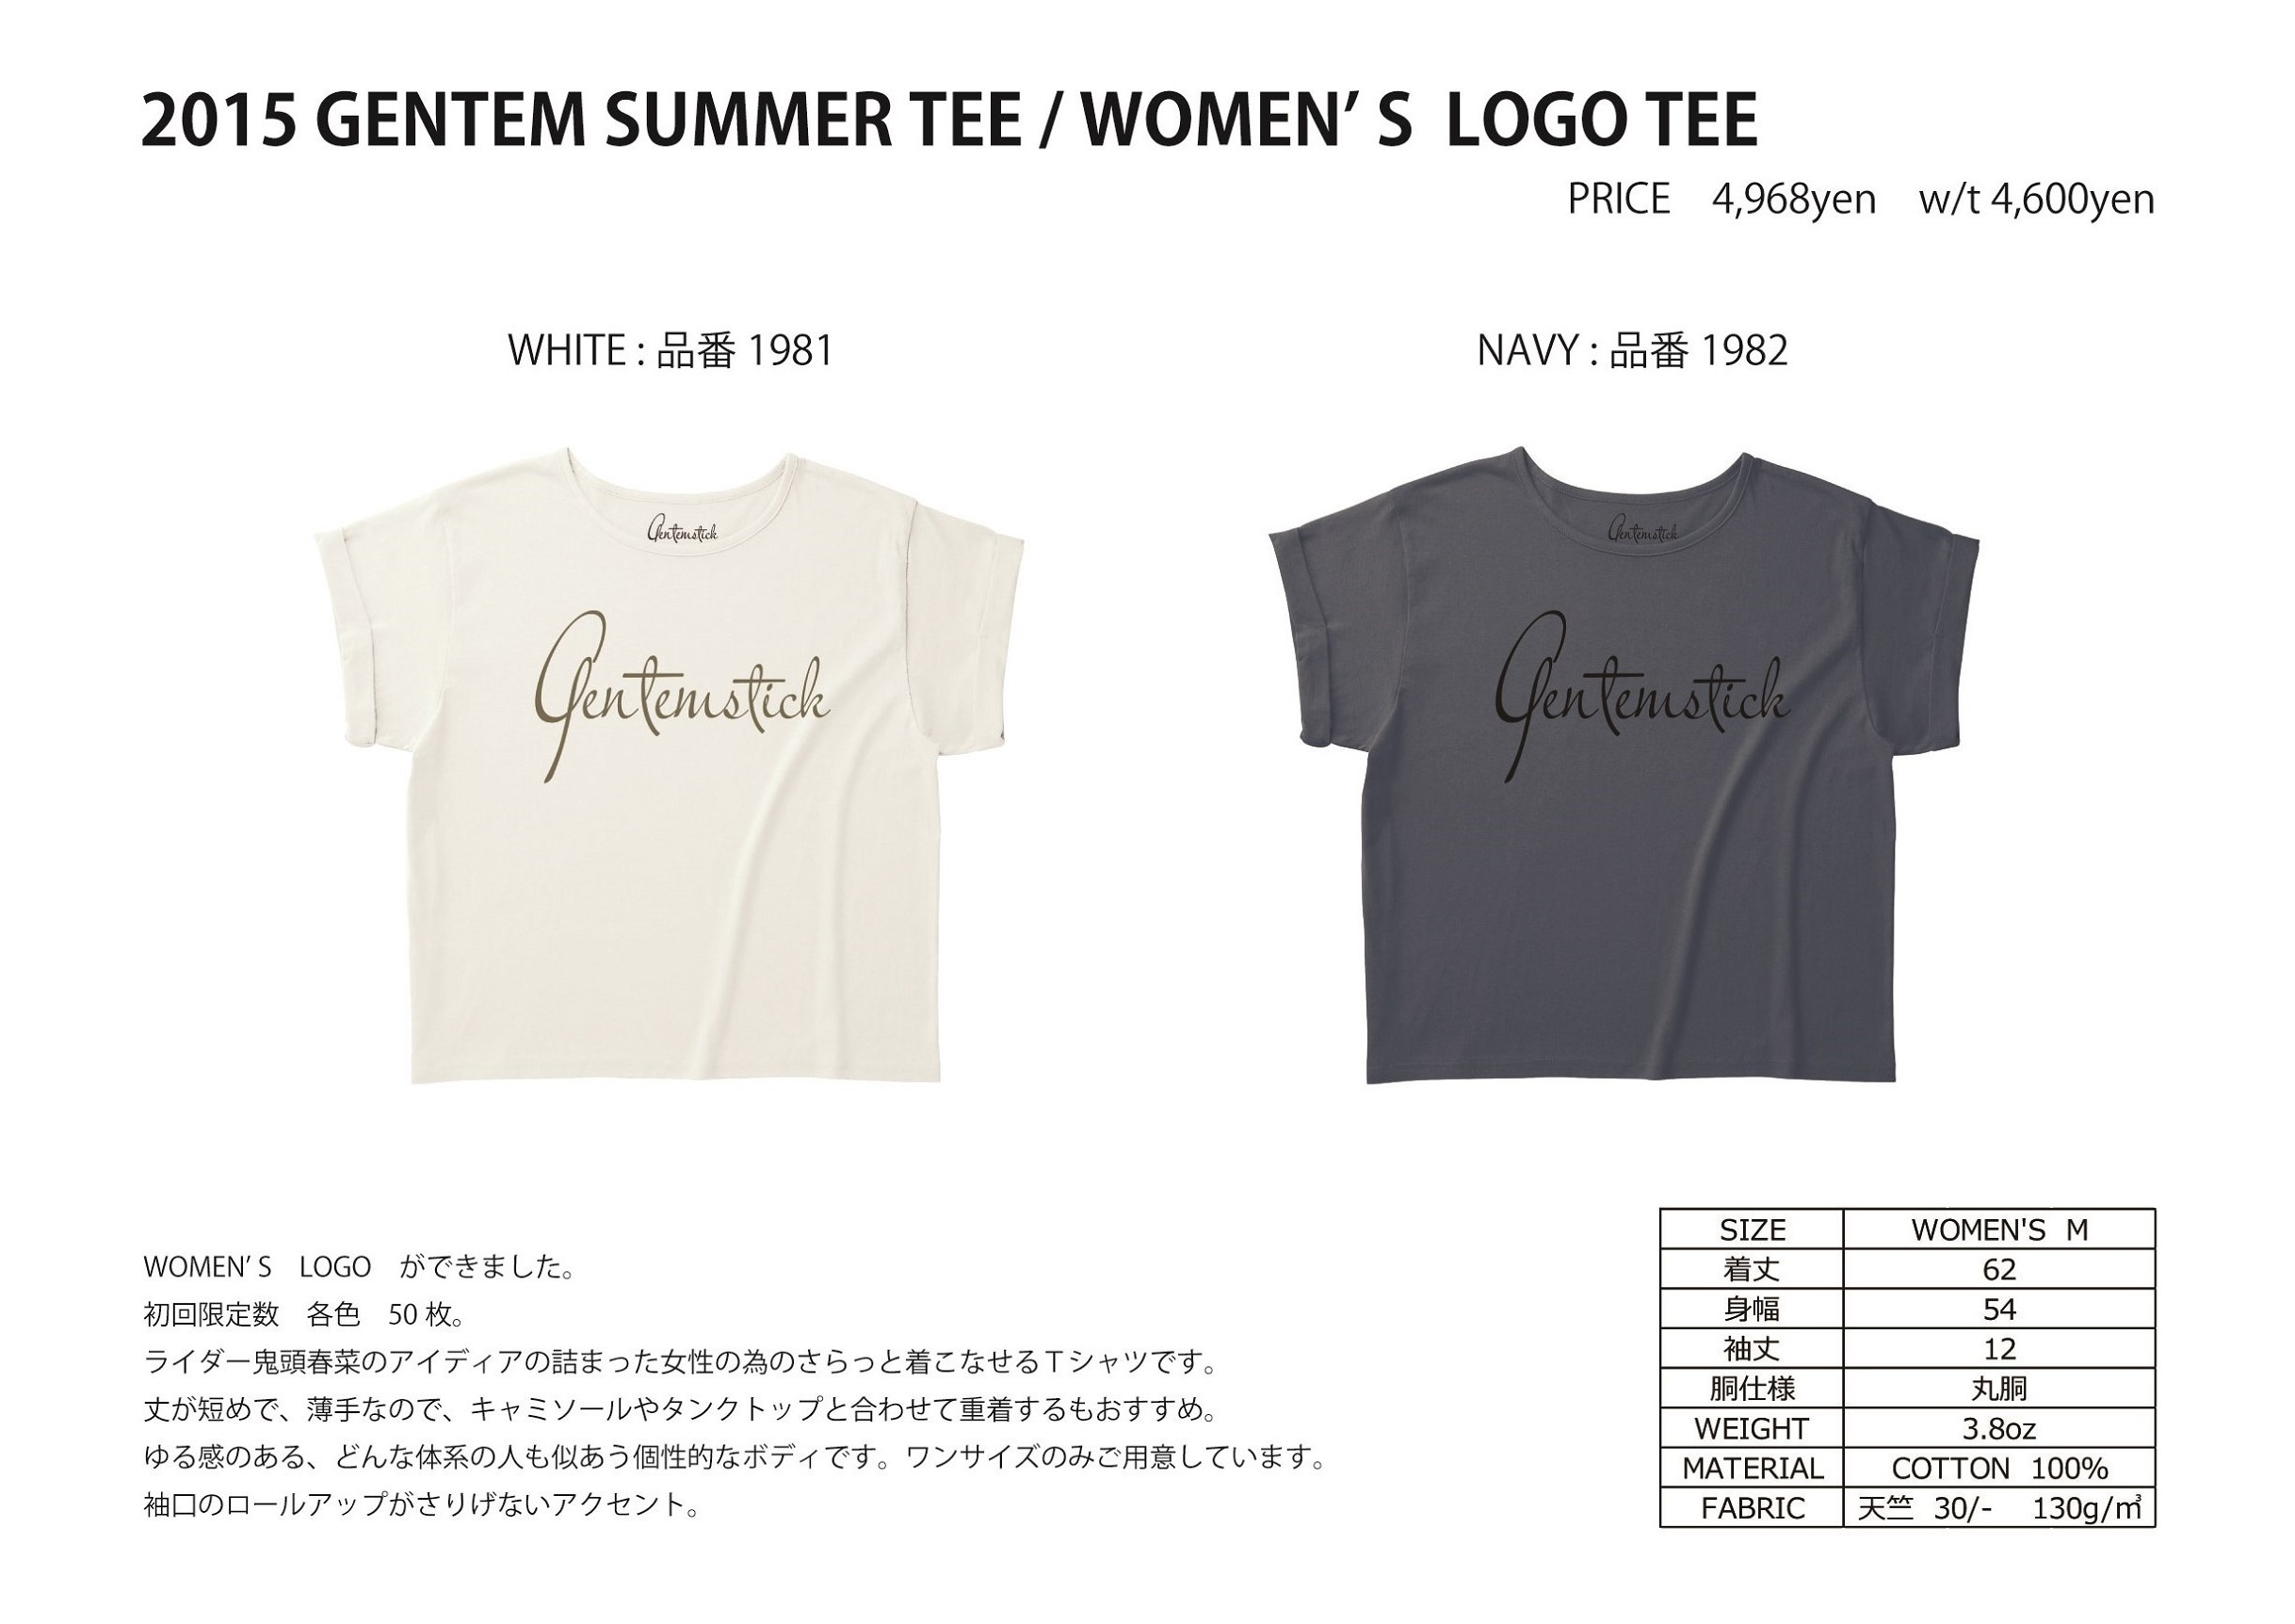 15-16summerTee women's logo tee